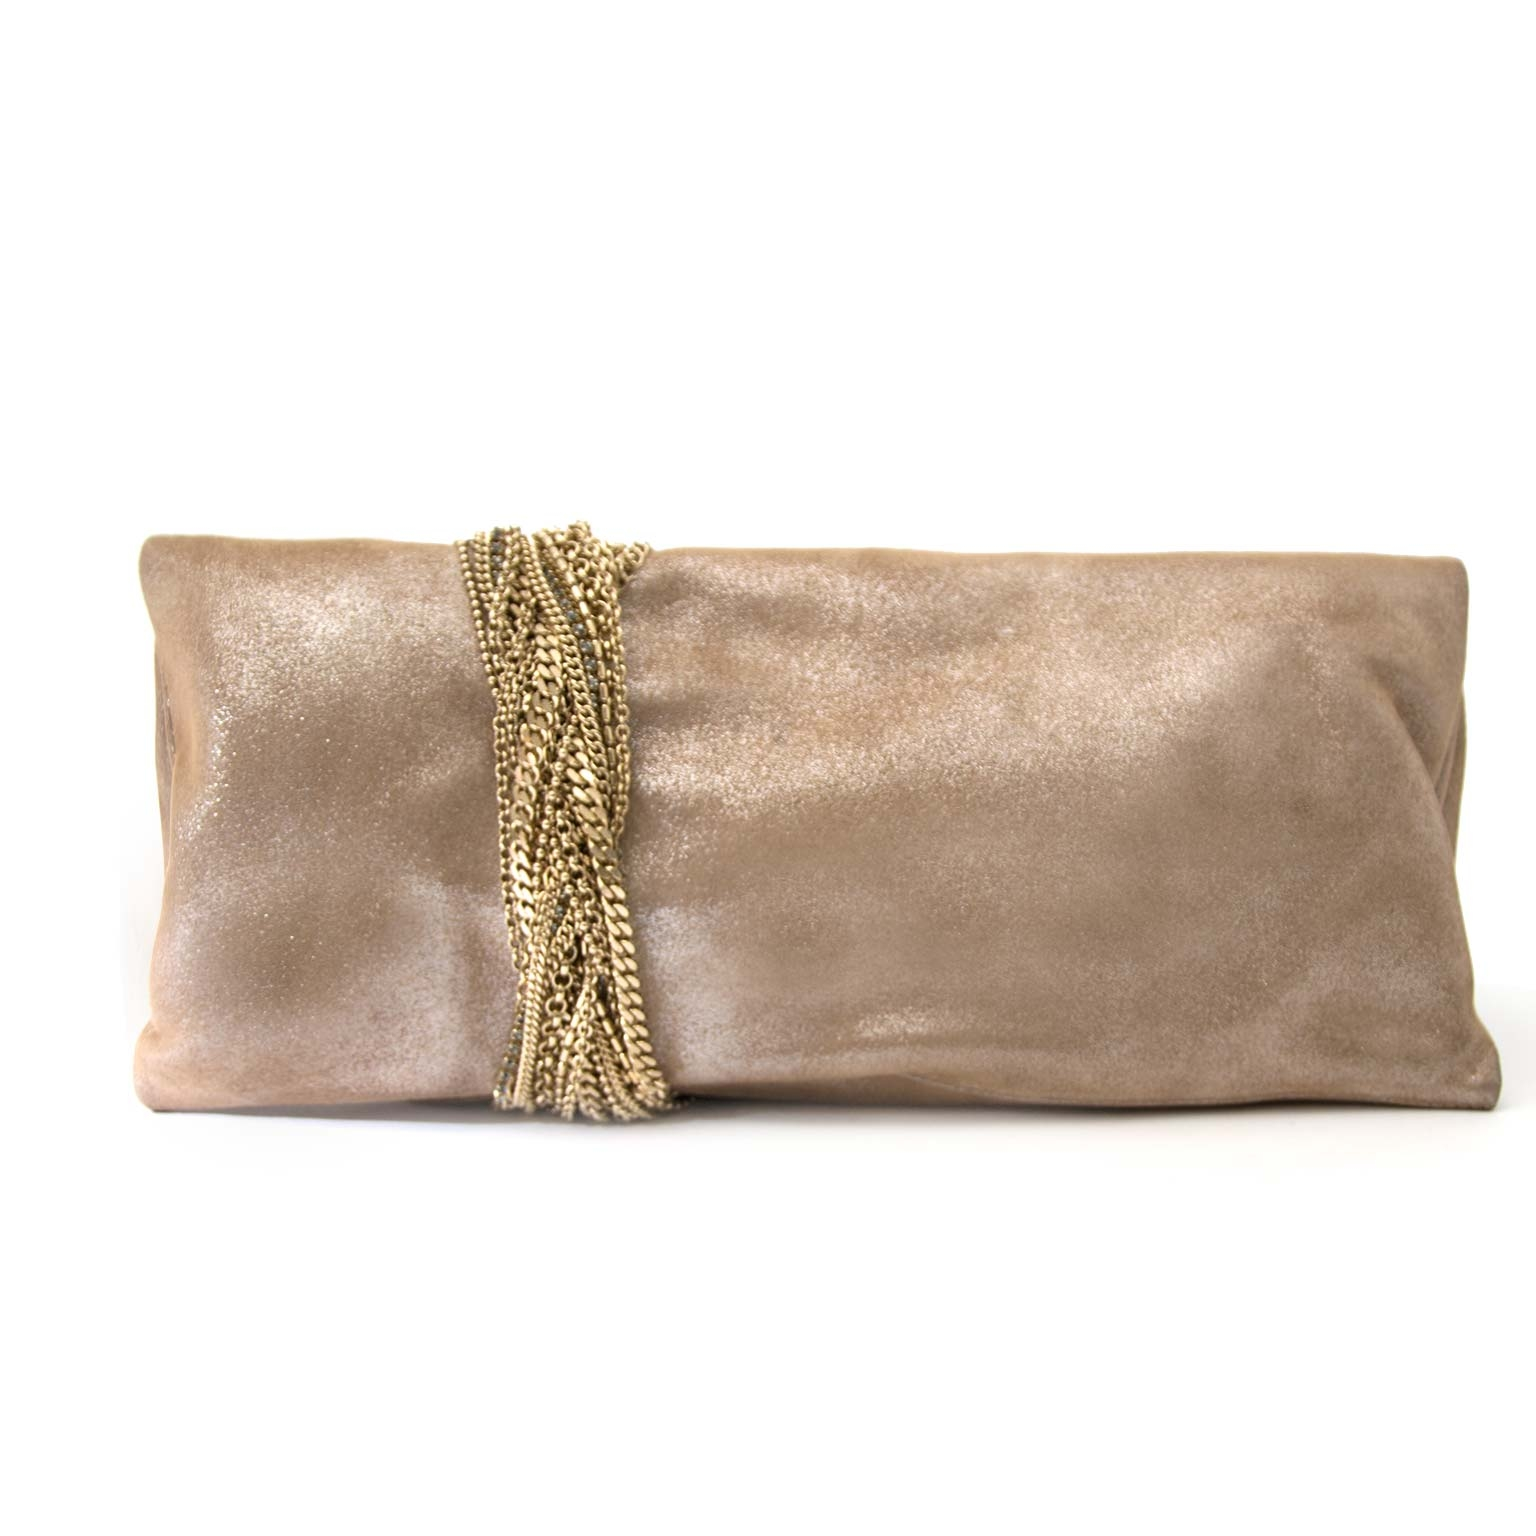 624cde92a142 ... Jimmy Choo Chandra Sand Summer Suede Clutch online available at online shop  labellov antwerp belgium